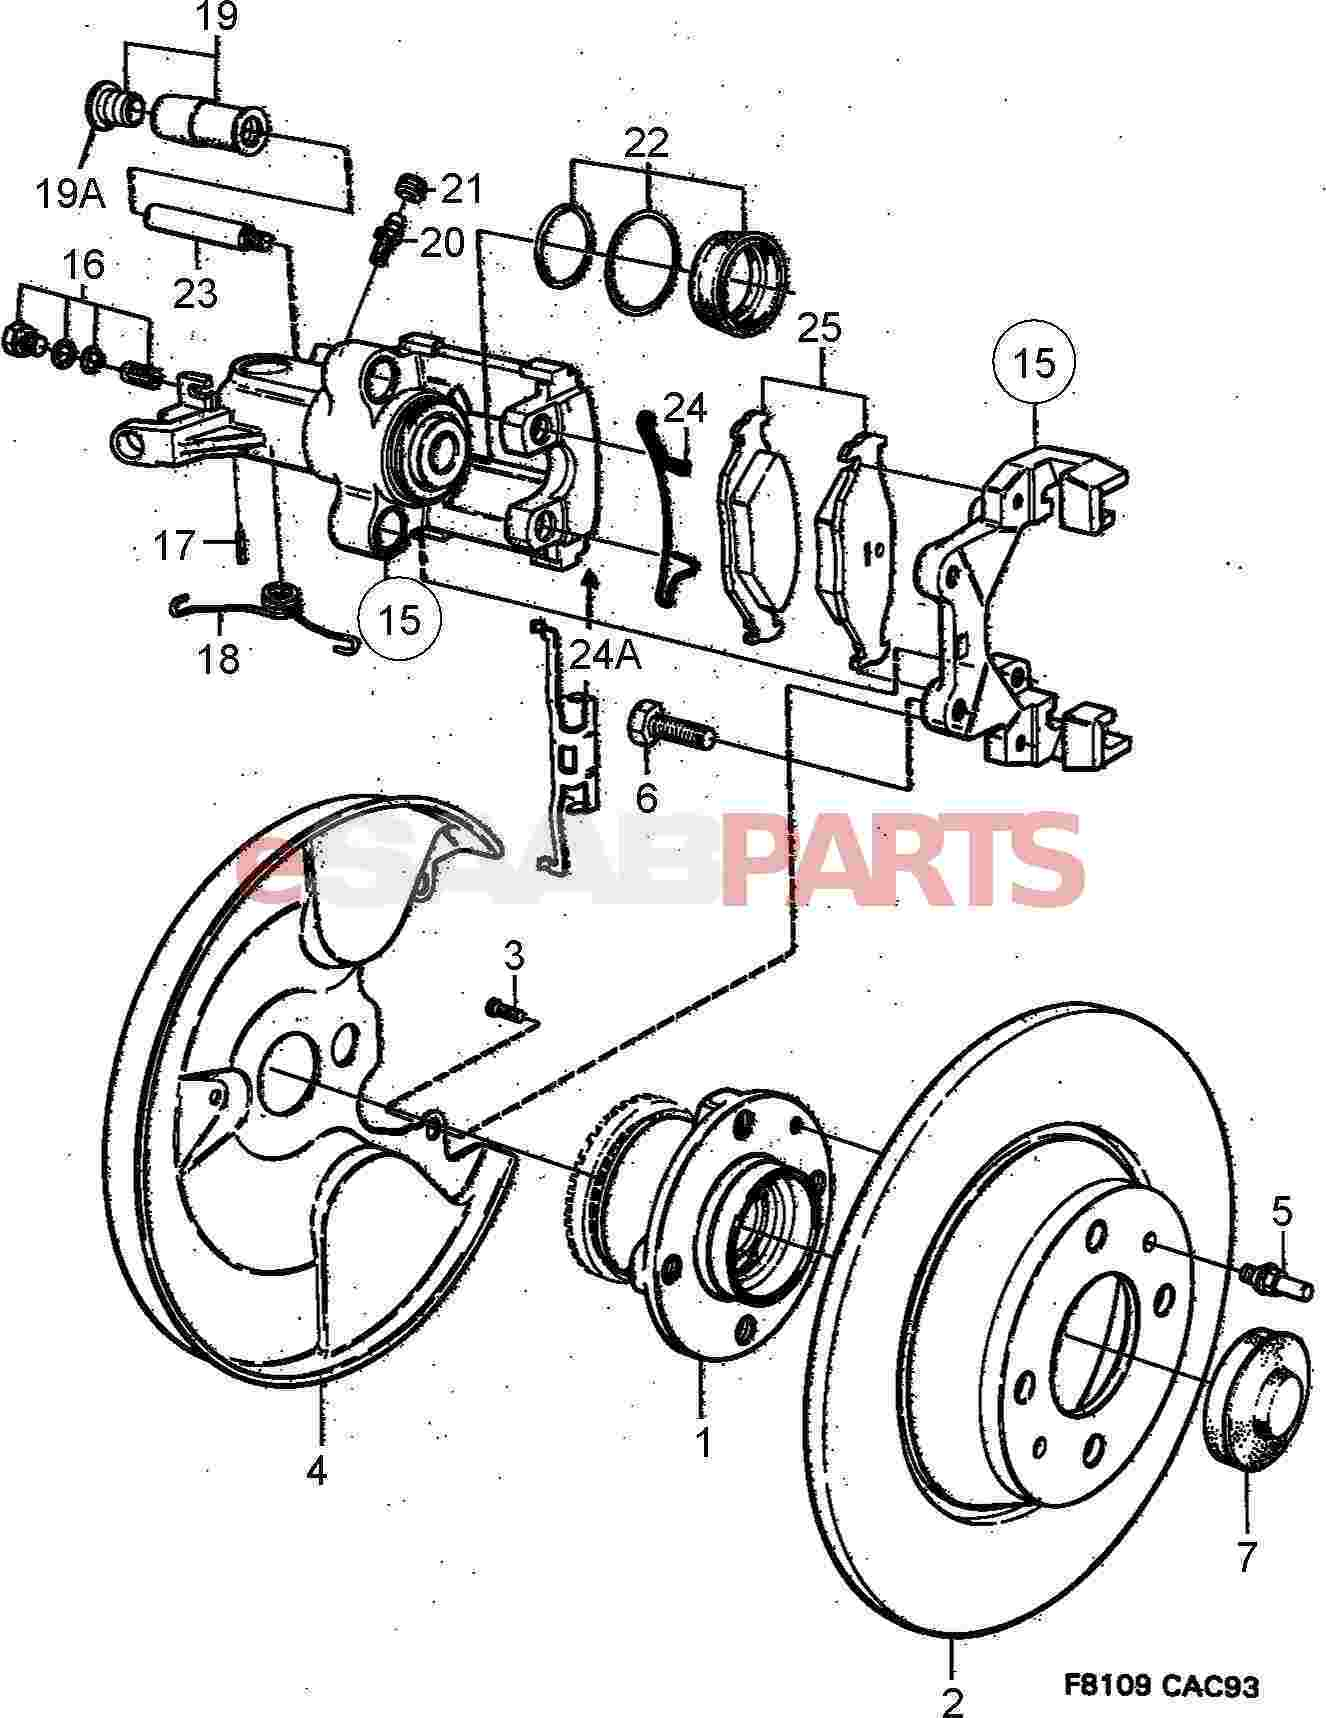 Mitsubishi Mirage Throttle Body Parts Diagram. Mitsubishi